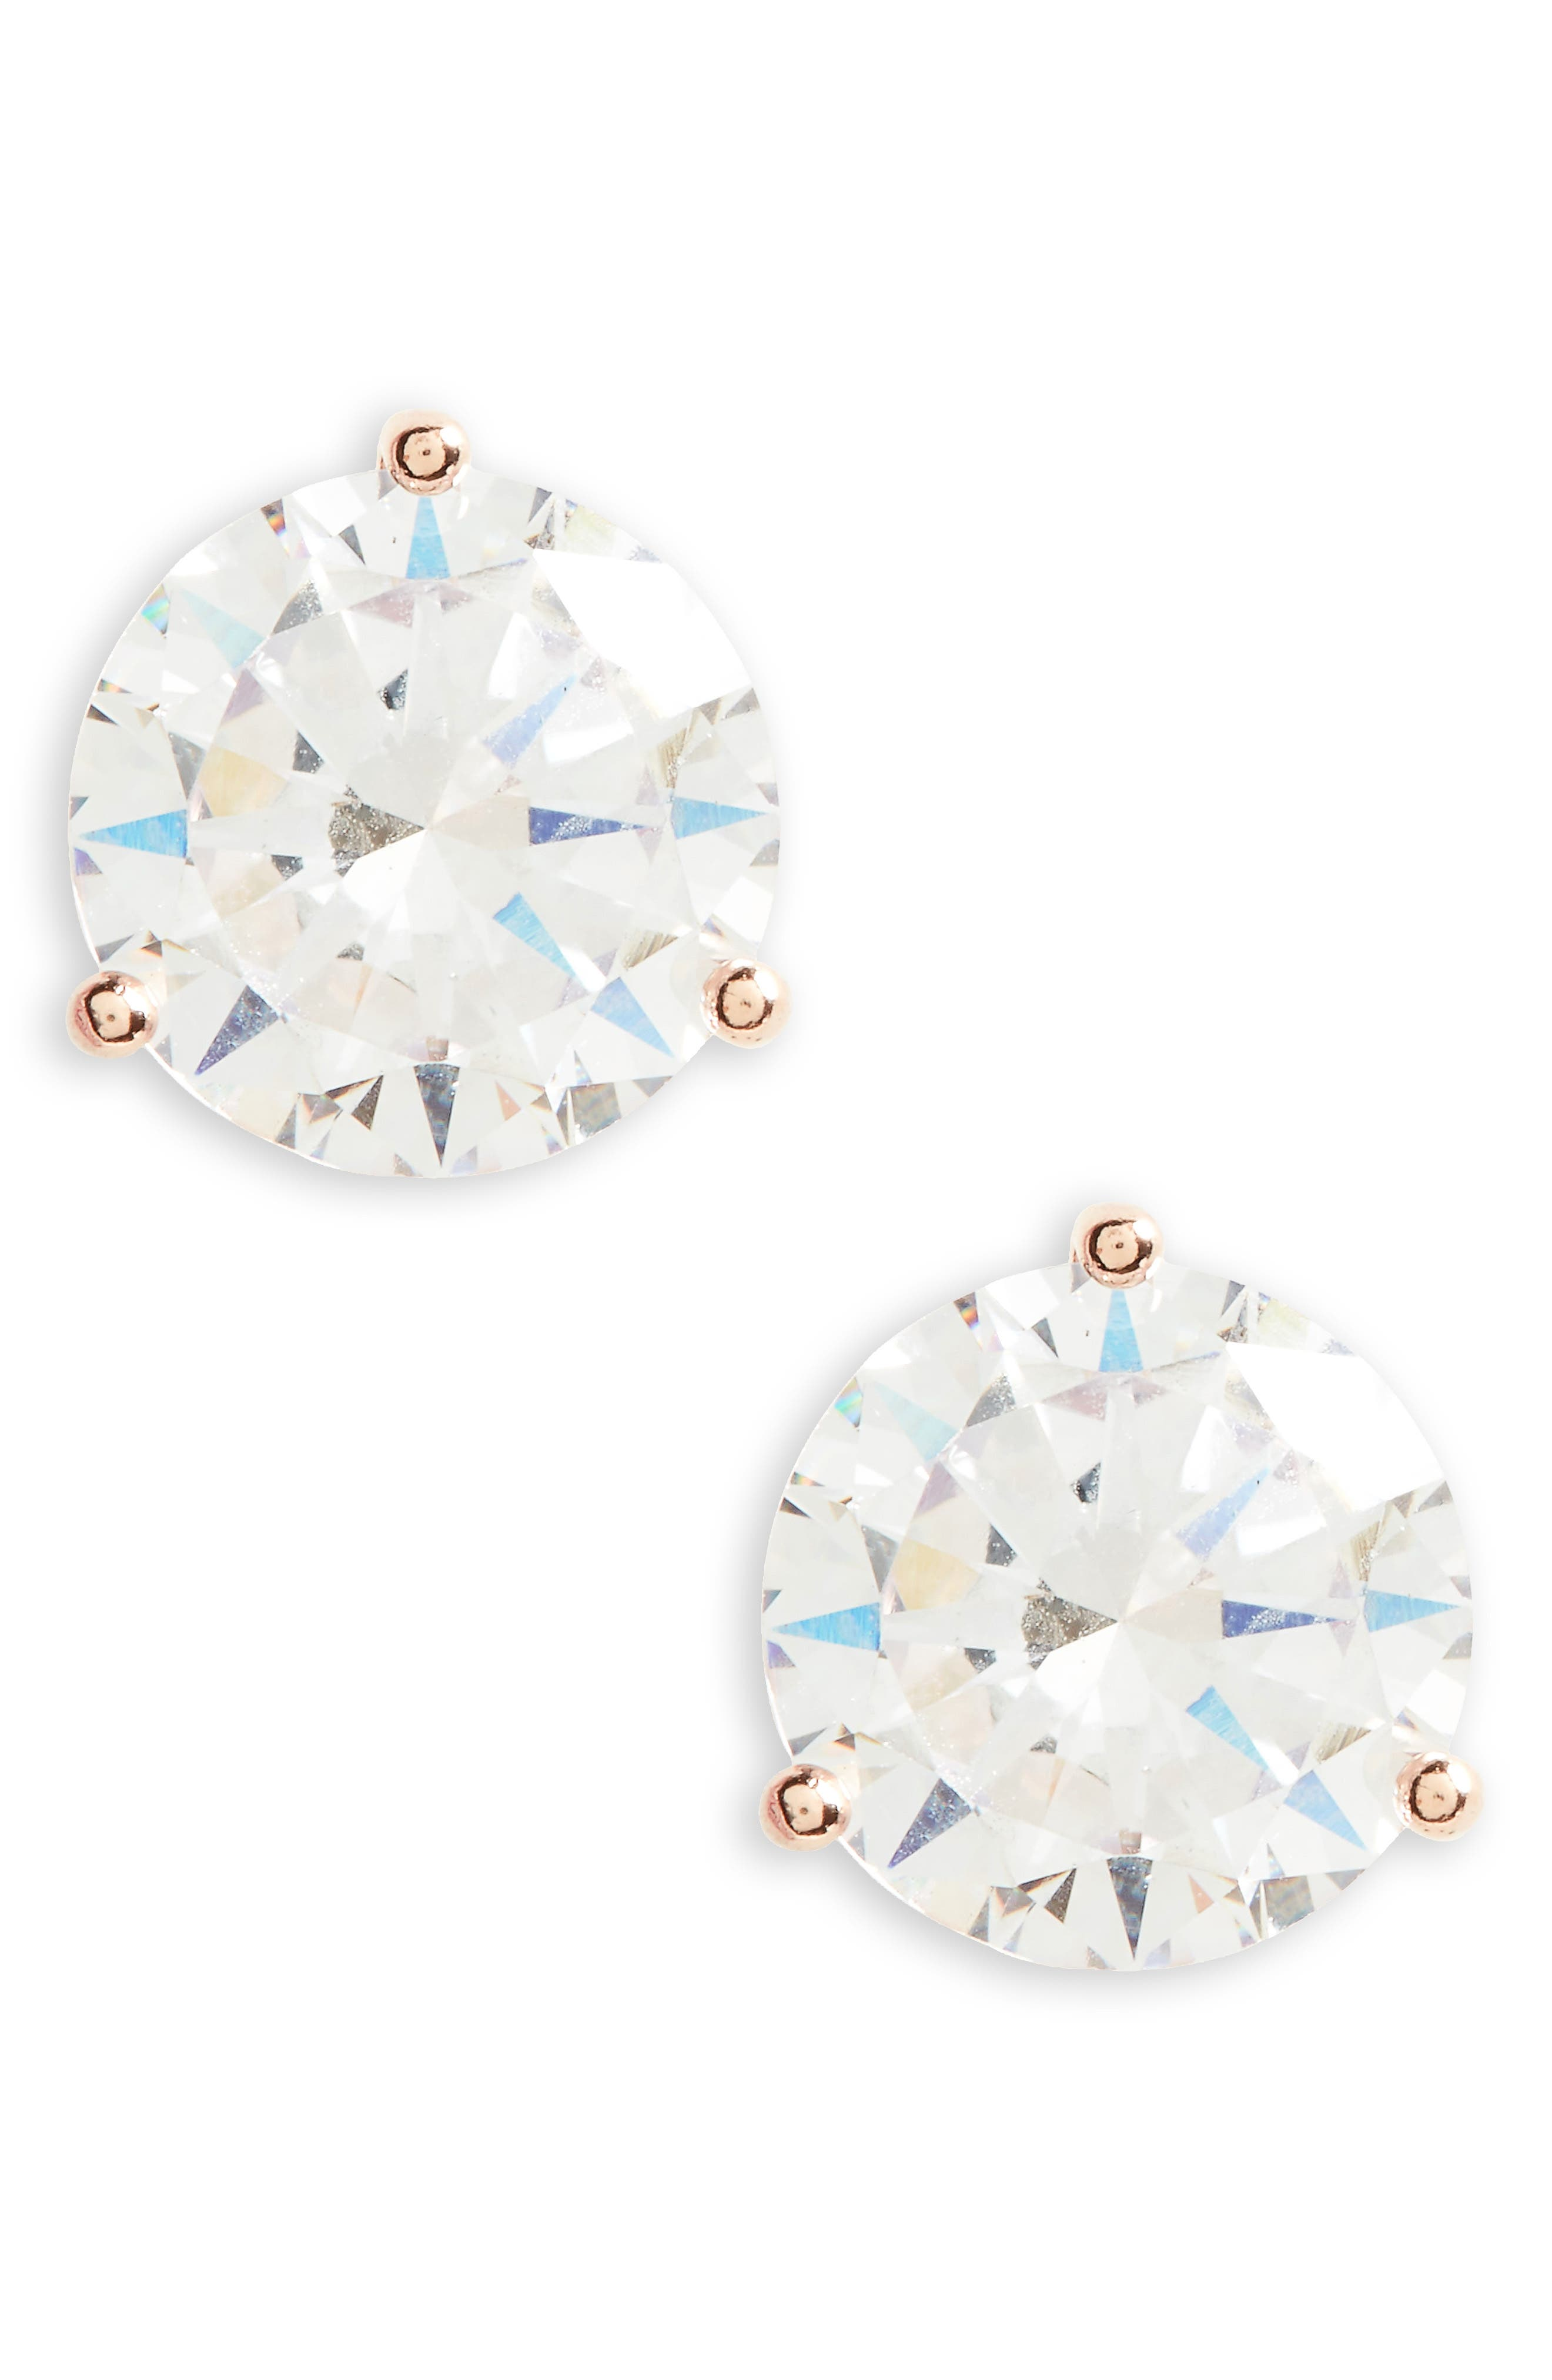 6ct tw Cubic Zirconia Earrings,                         Main,                         color, CLEAR- ROSE GOLD